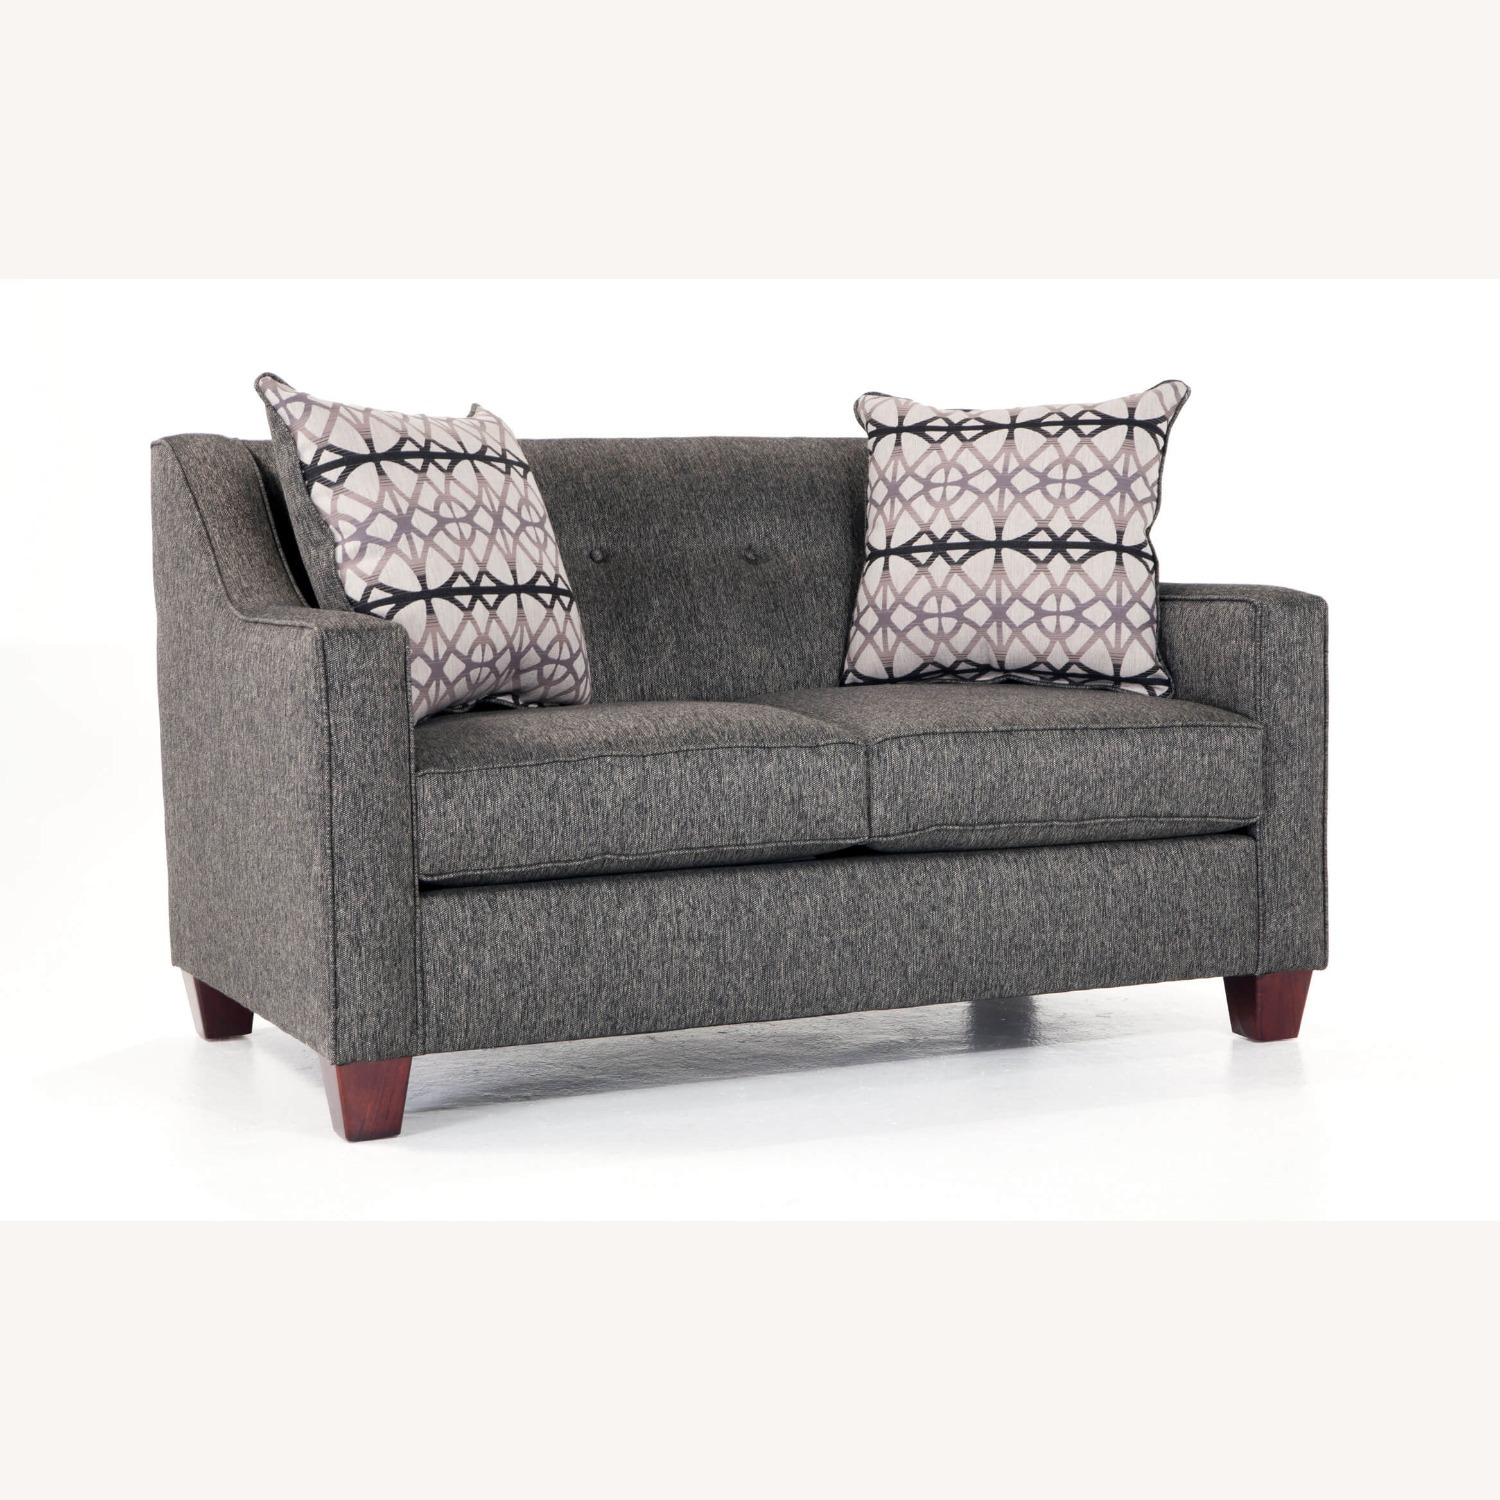 Bob's Discount Stylish & Comfortable Loveseat - image-6